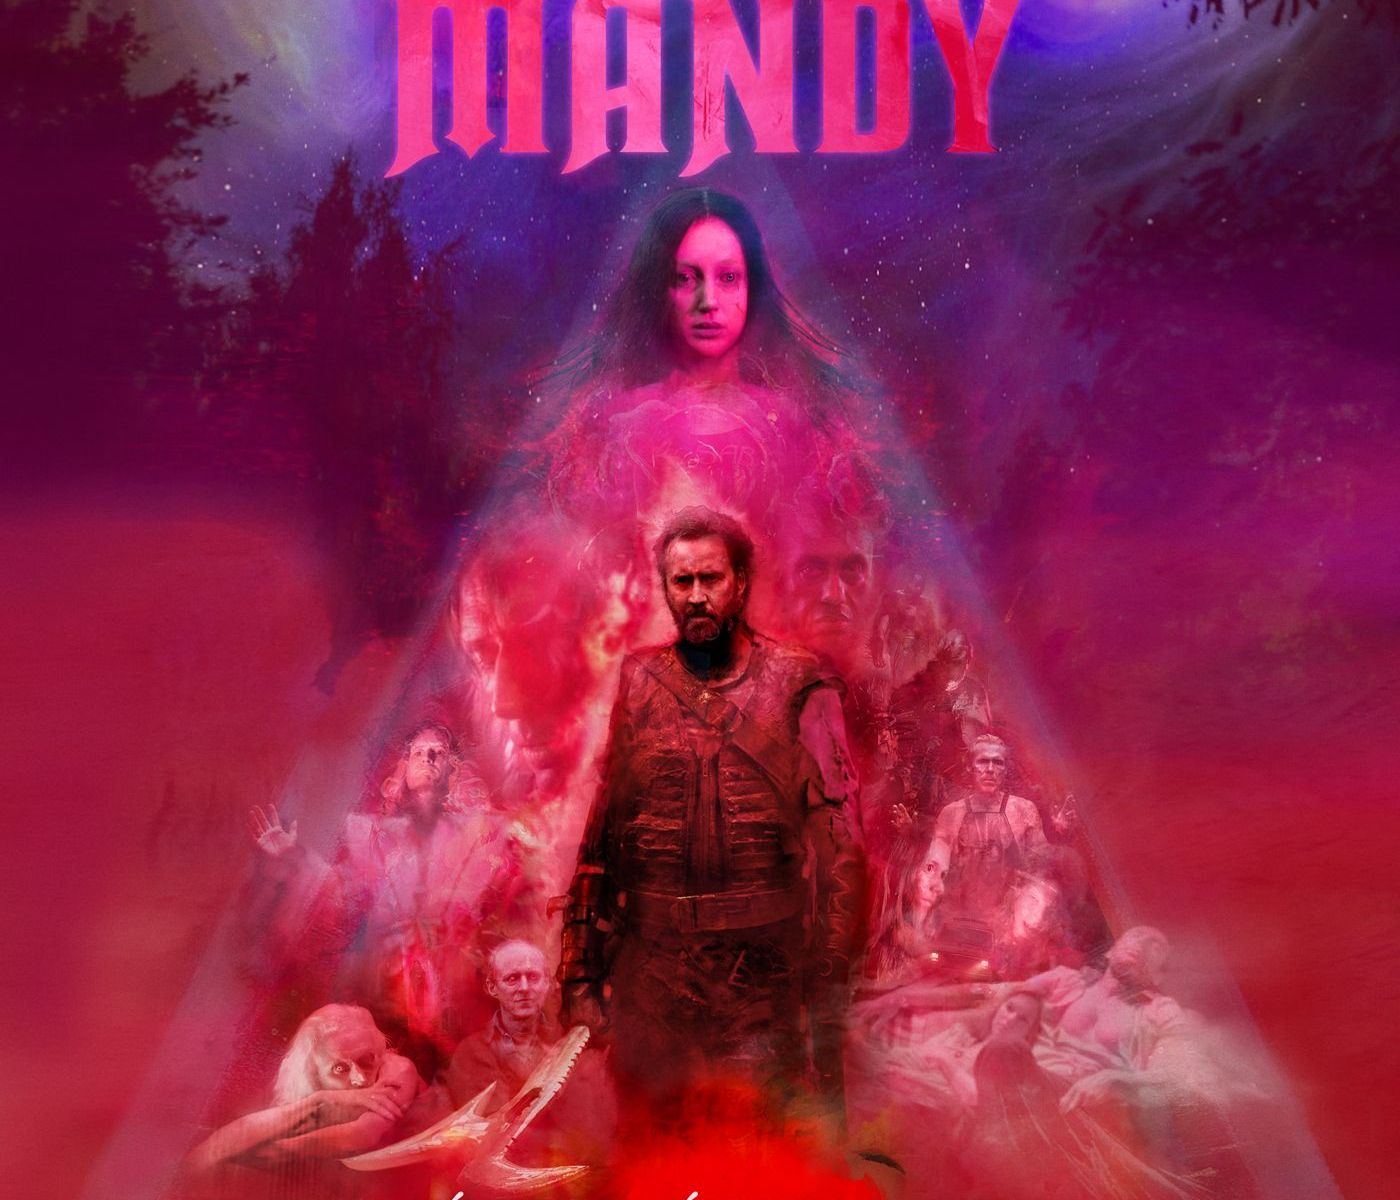 Mandy soundtrack Johan Johansson